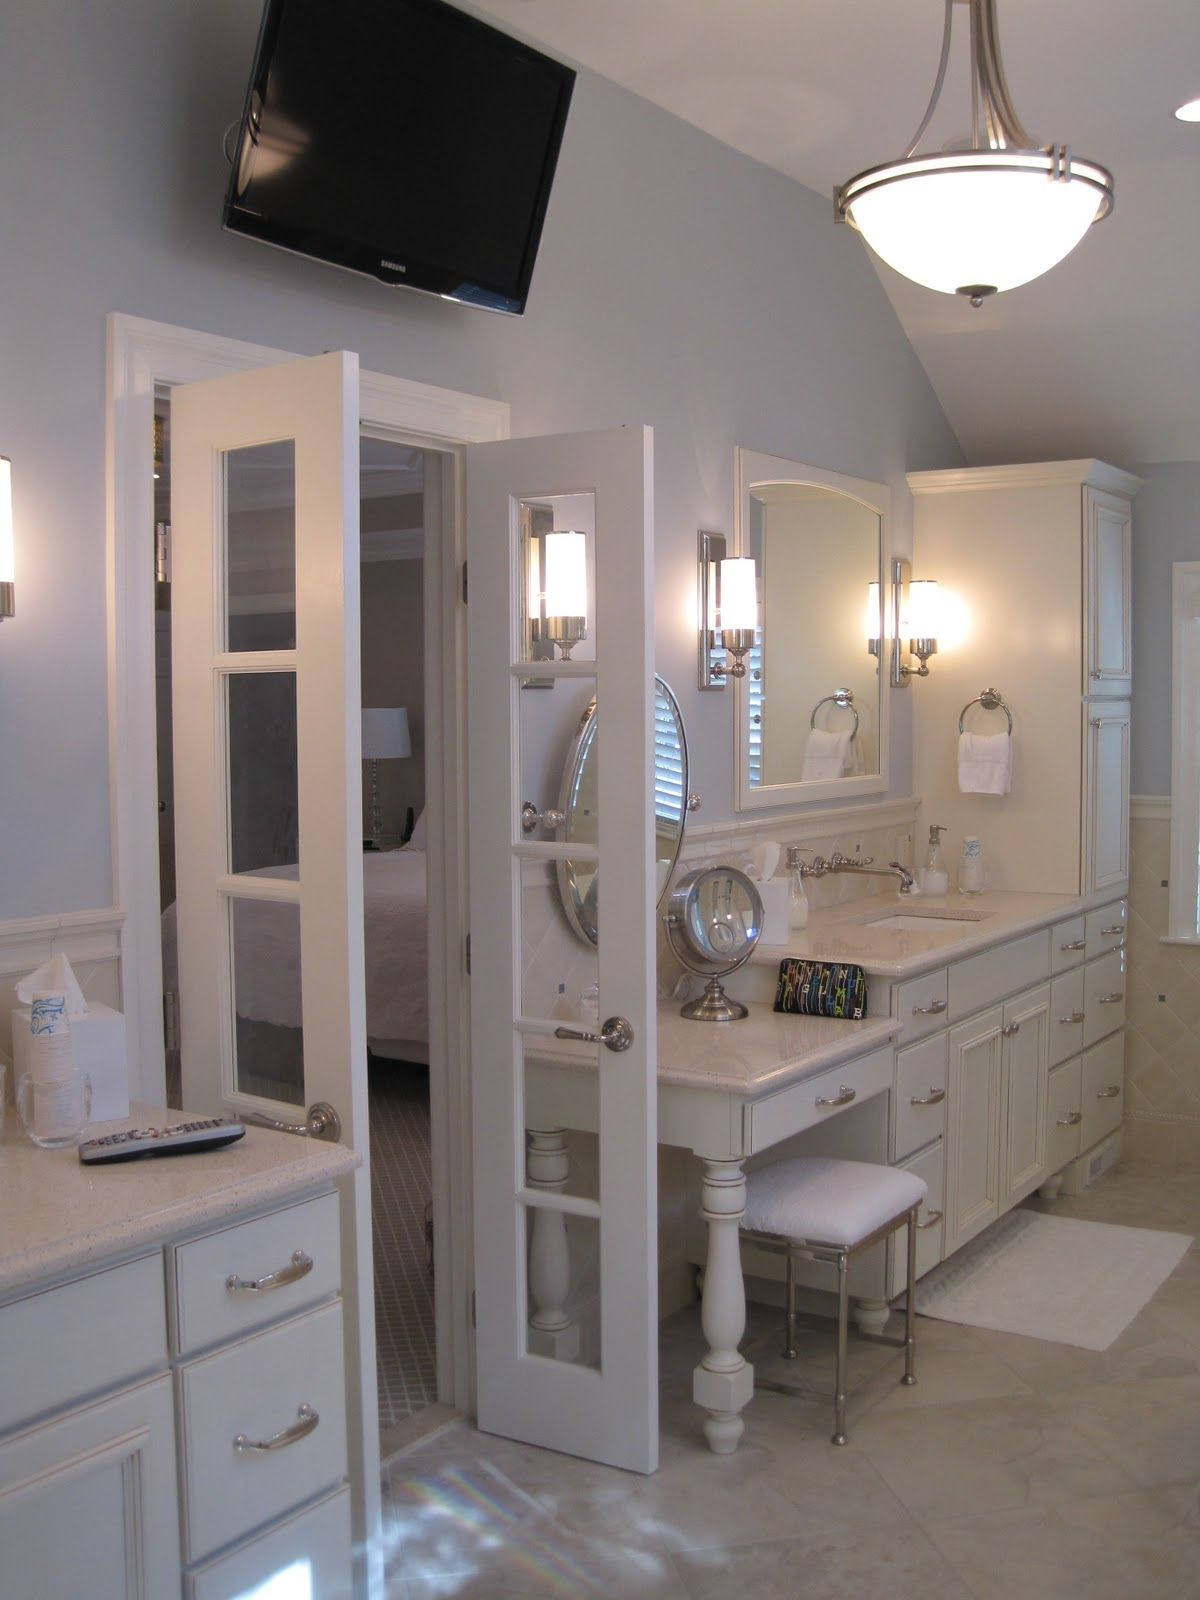 master suite addition over garage - Google Search | Bathroom ideas on basement additions, room additions, glass additions, small masterbath additions, garage additions, building additions, outdoor additions, fireplace additions, master bedroom additions, loft additions,